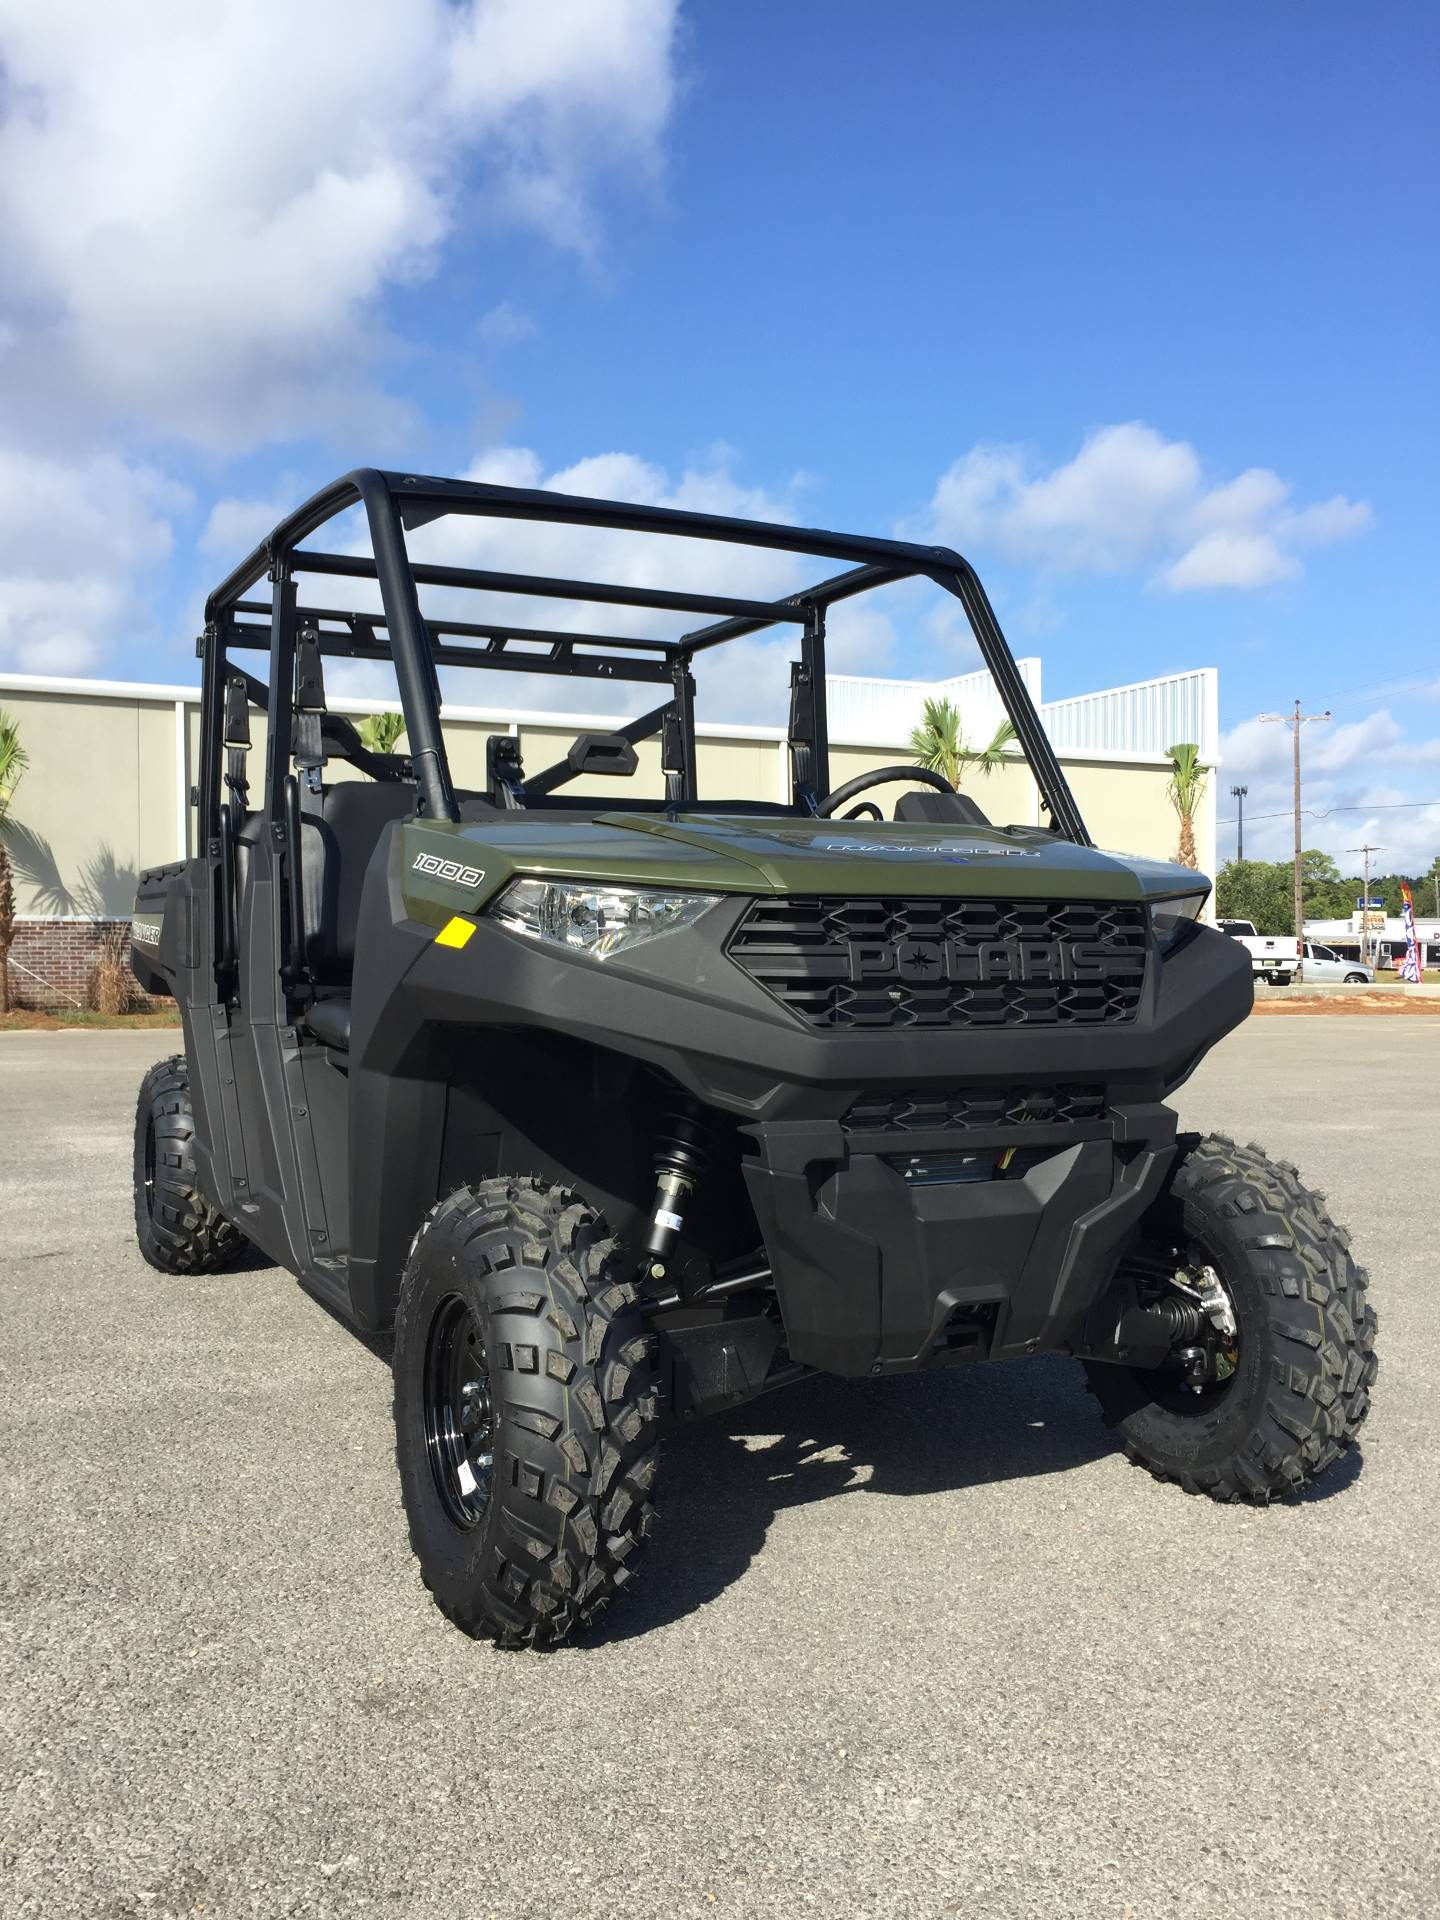 2020 Polaris Ranger Crew 1000 in Pascagoula, Mississippi - Photo 4